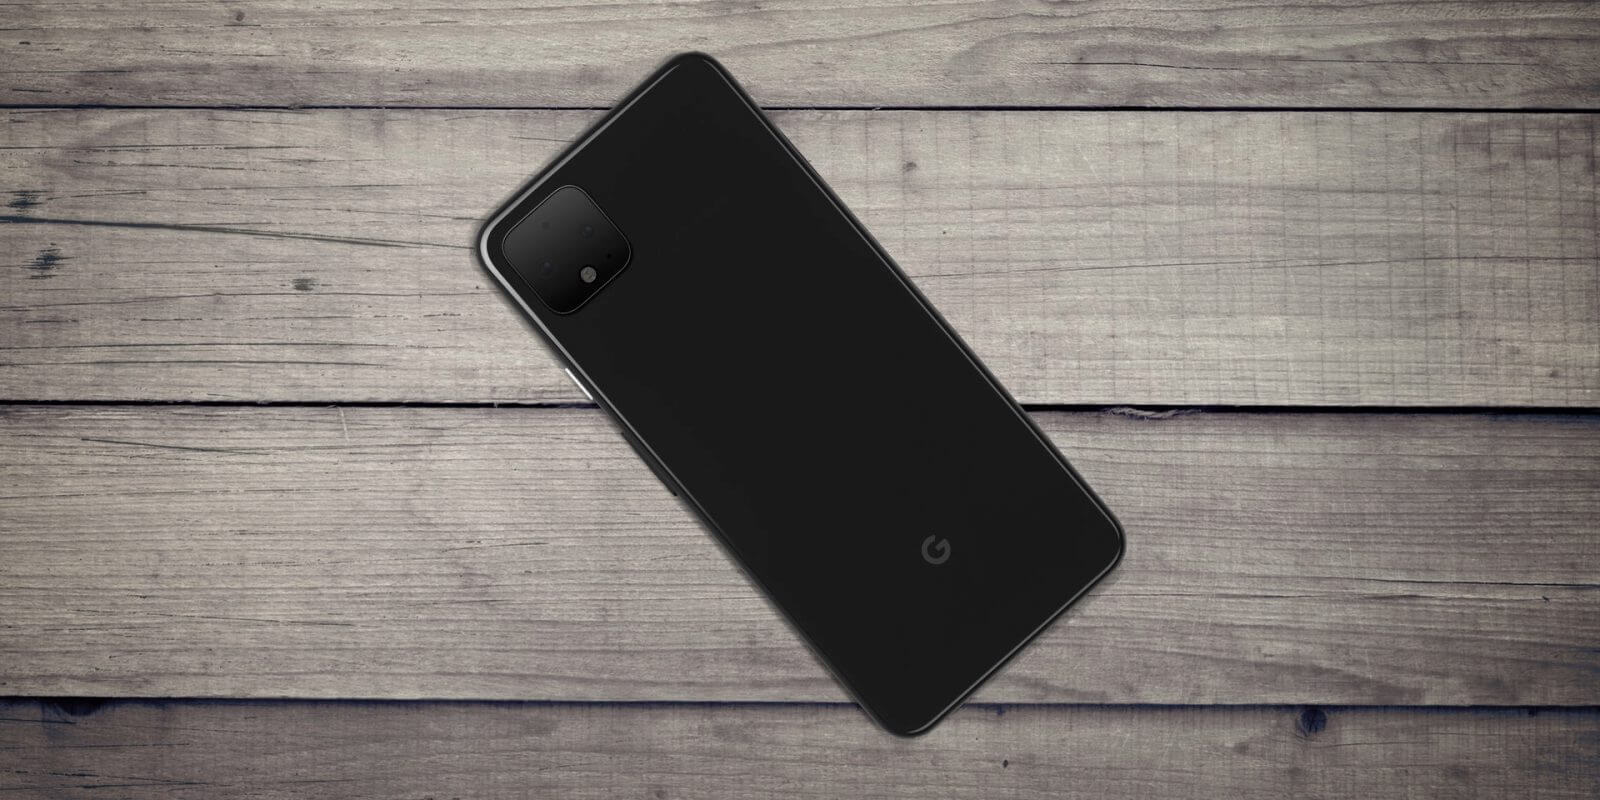 Google to host Pixel 4 unveiling at New York City event on October 15